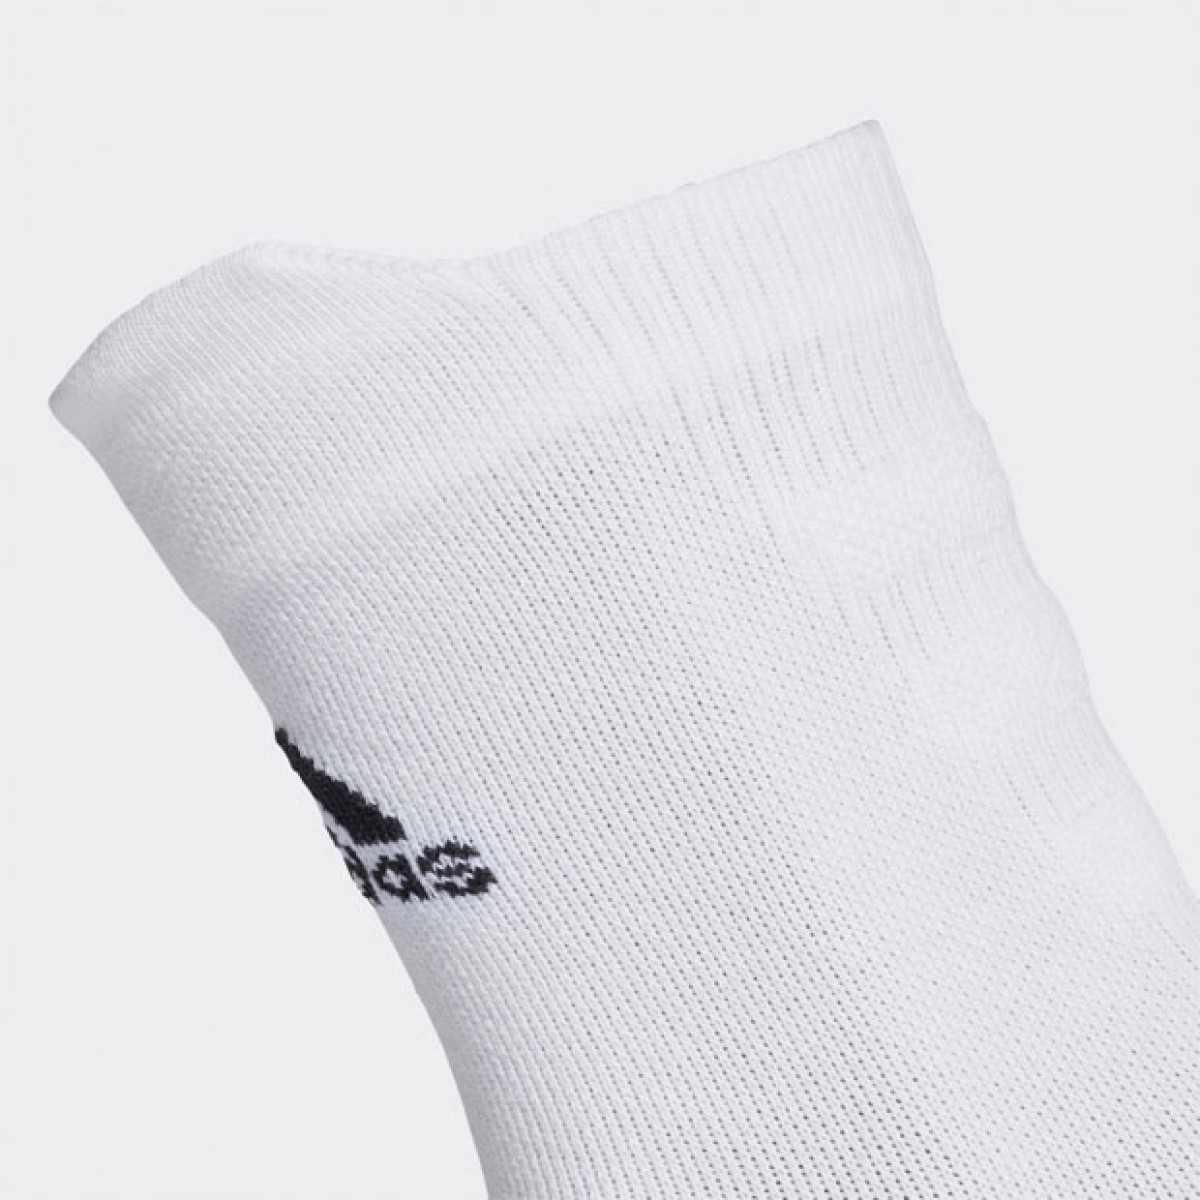 Adidas Socks ASK Crew 'White' CG2673